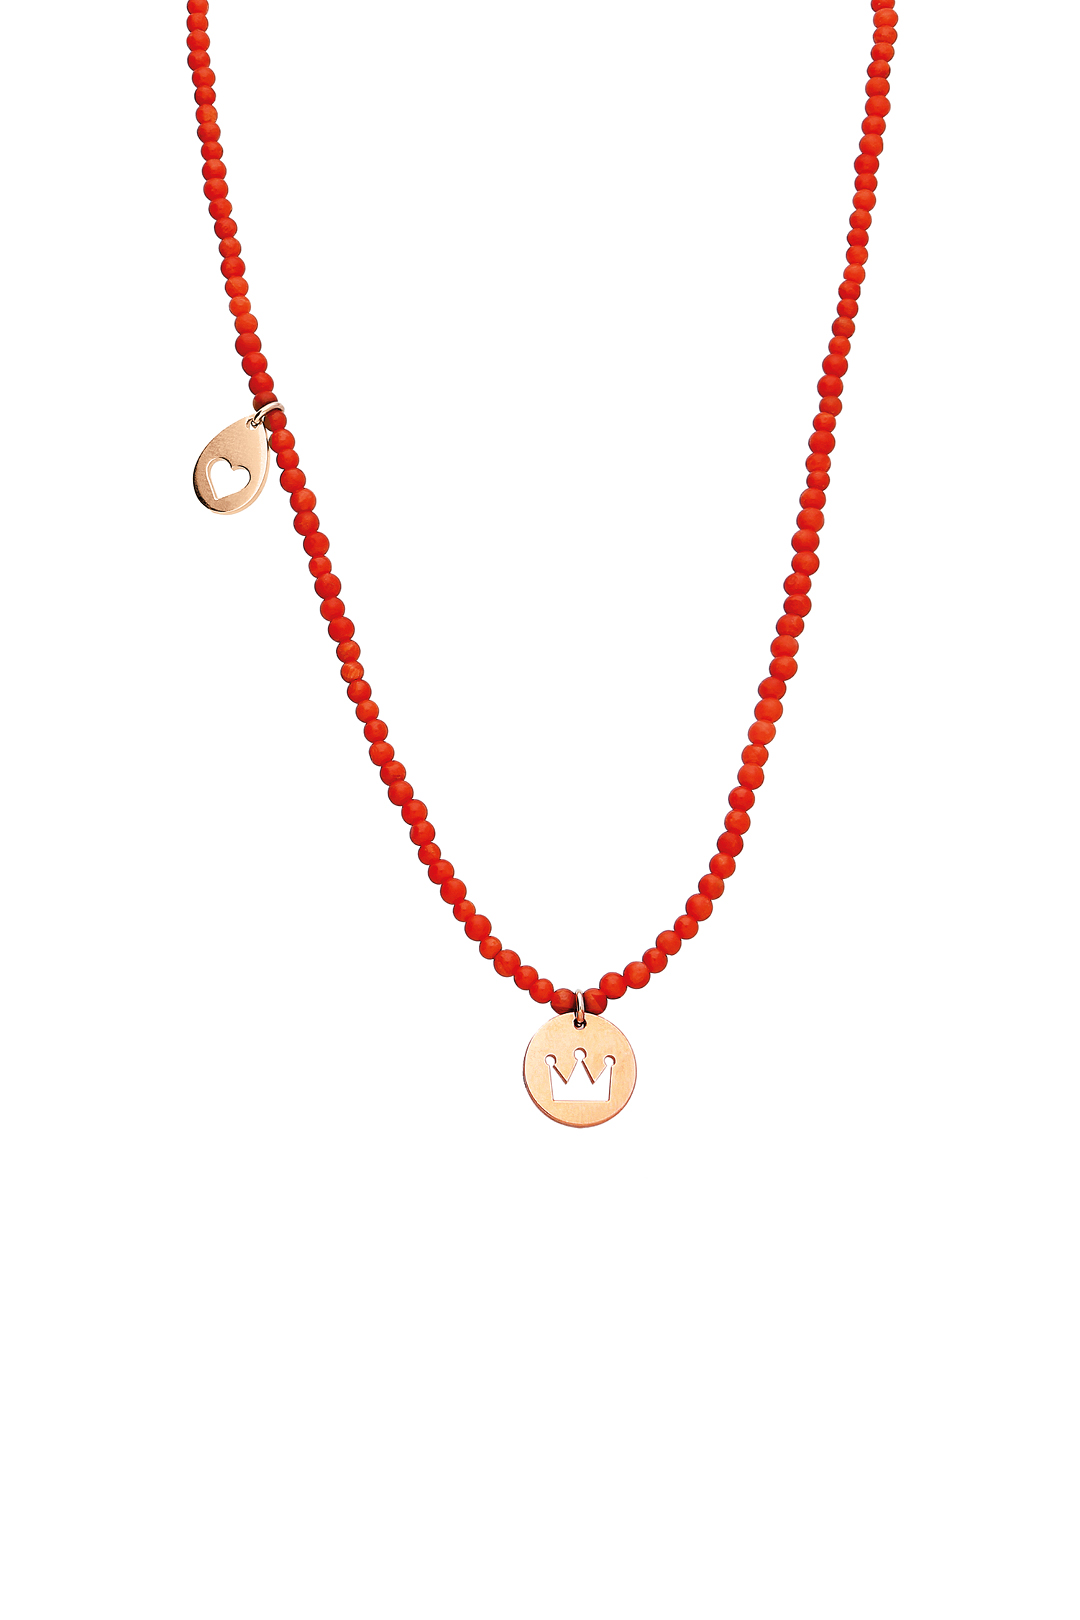 Coral and Gold Charm Necklace